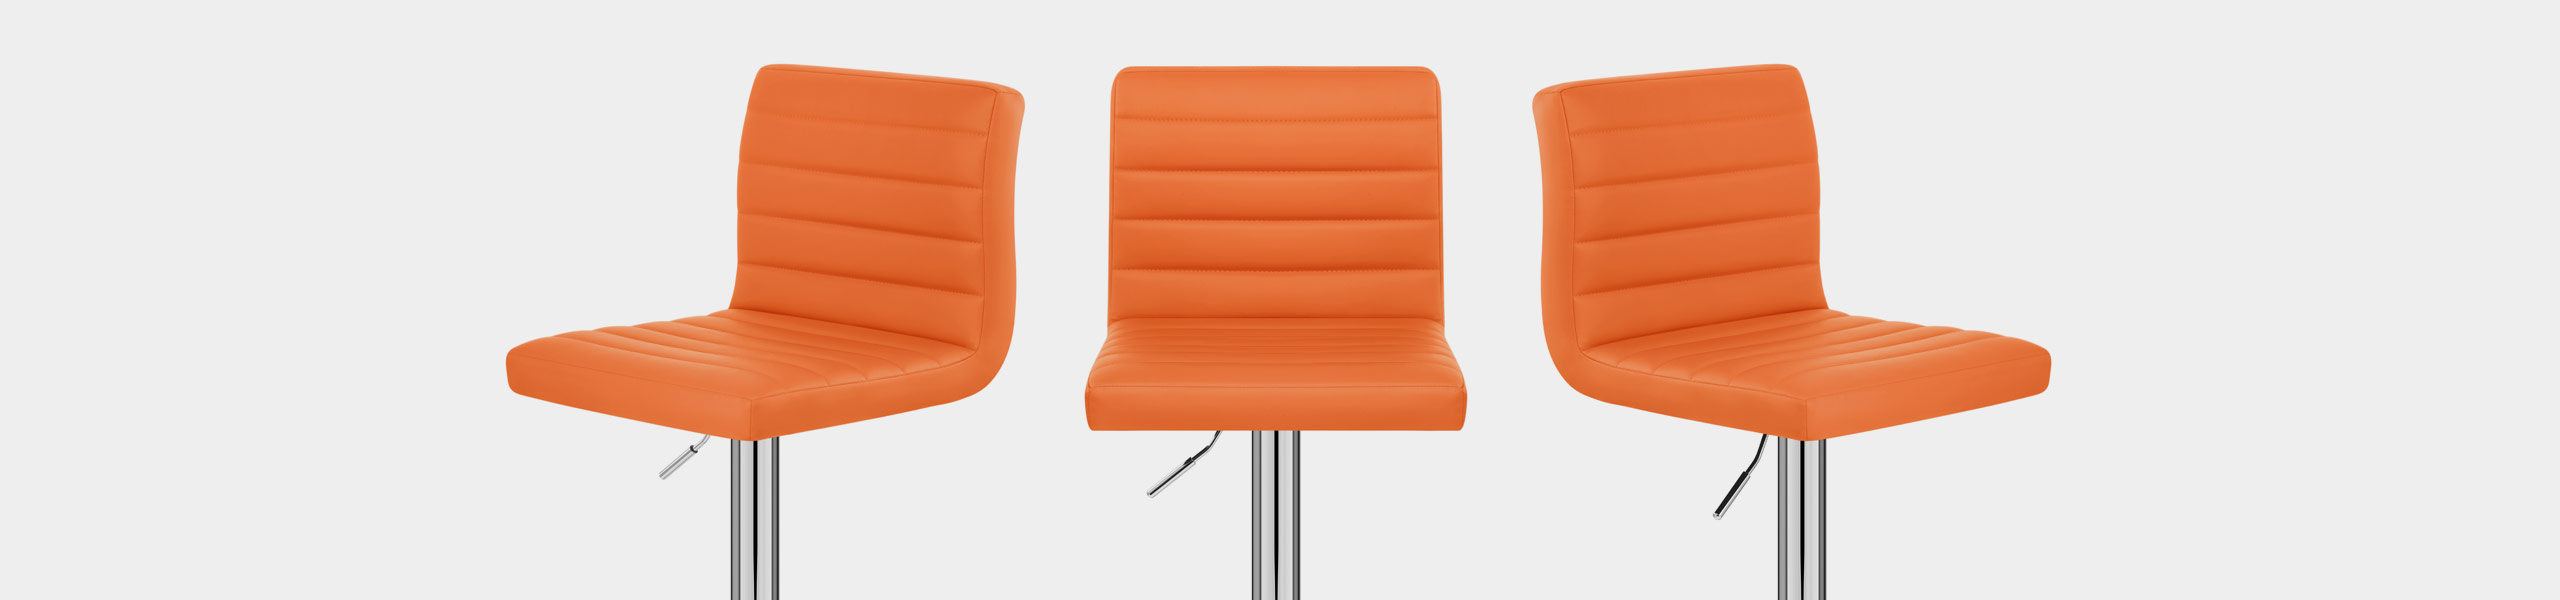 Mint Bar Stool Orange Video Banner